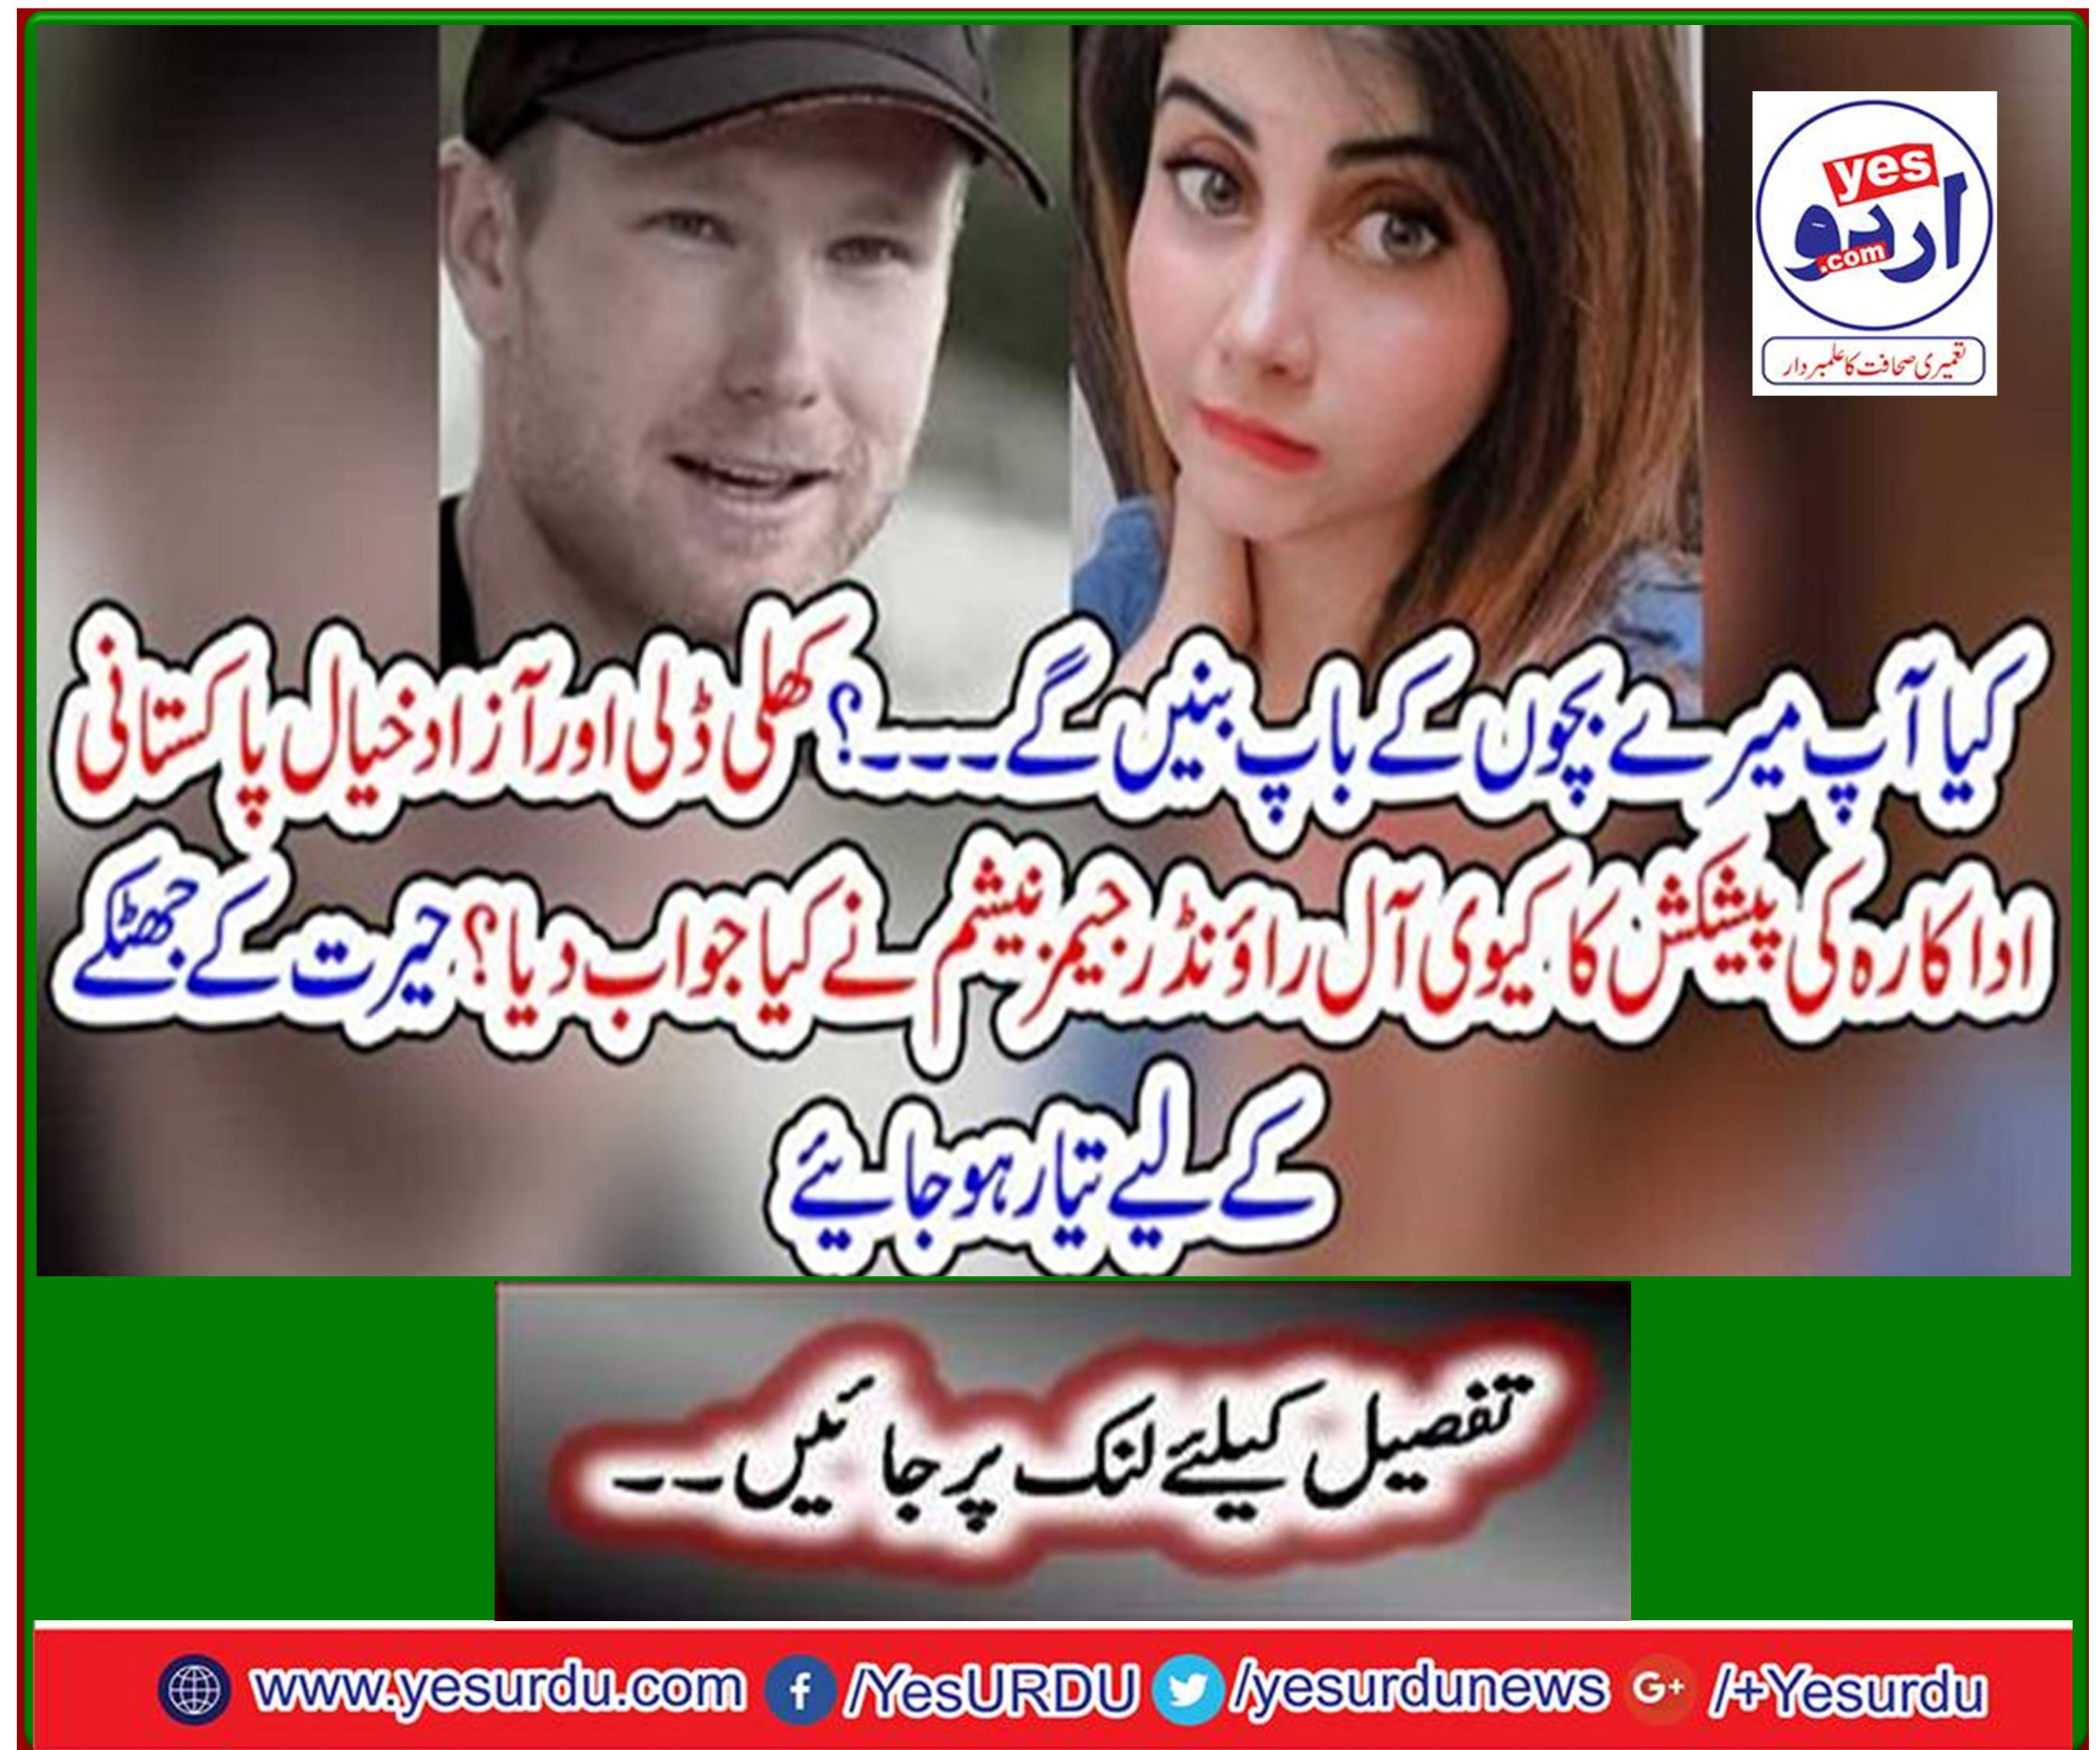 How did Kiwi all-rounder James Neesham respond to an open-minded and open-minded Pakistani actress? Get ready for a surprise shock